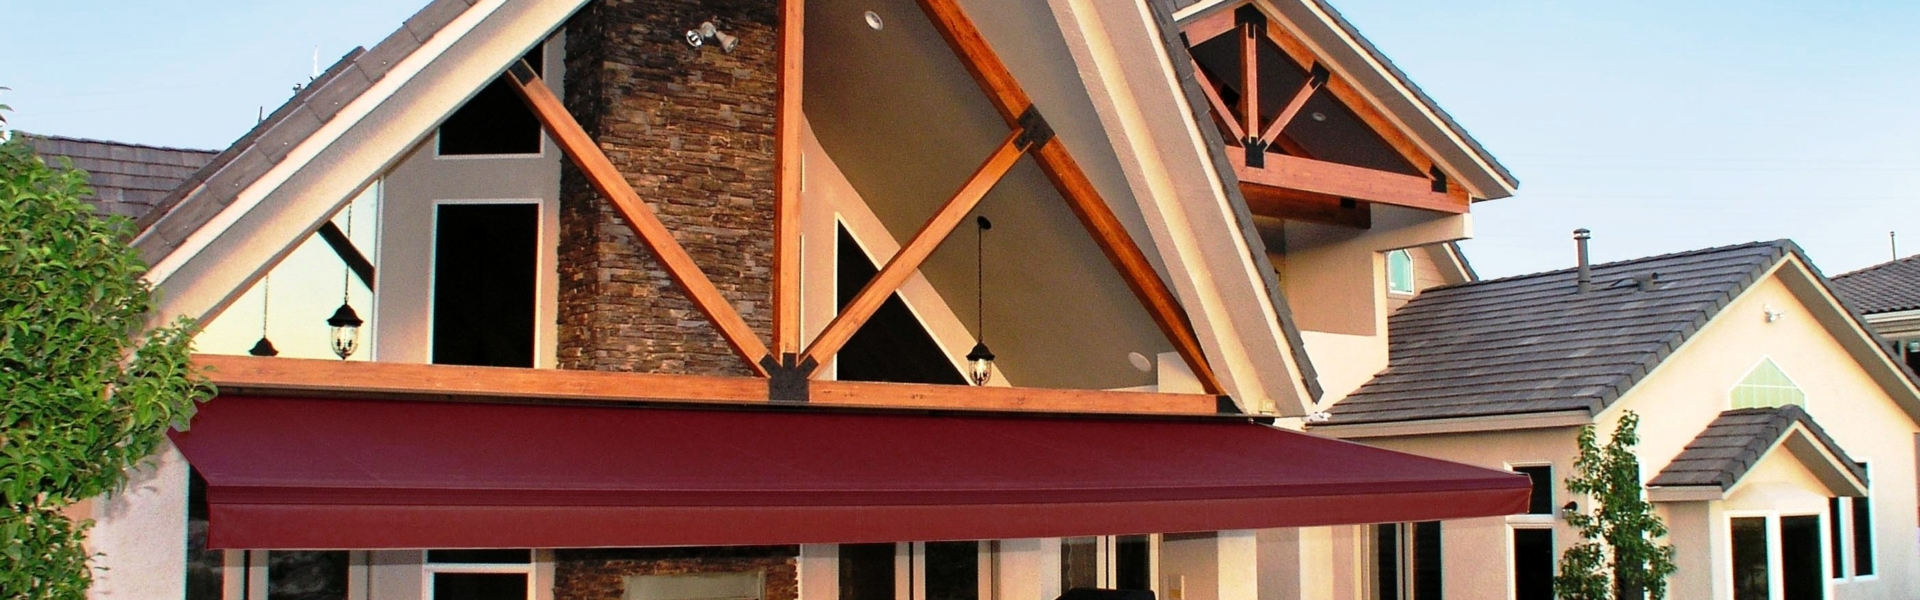 retractable_awning (3)